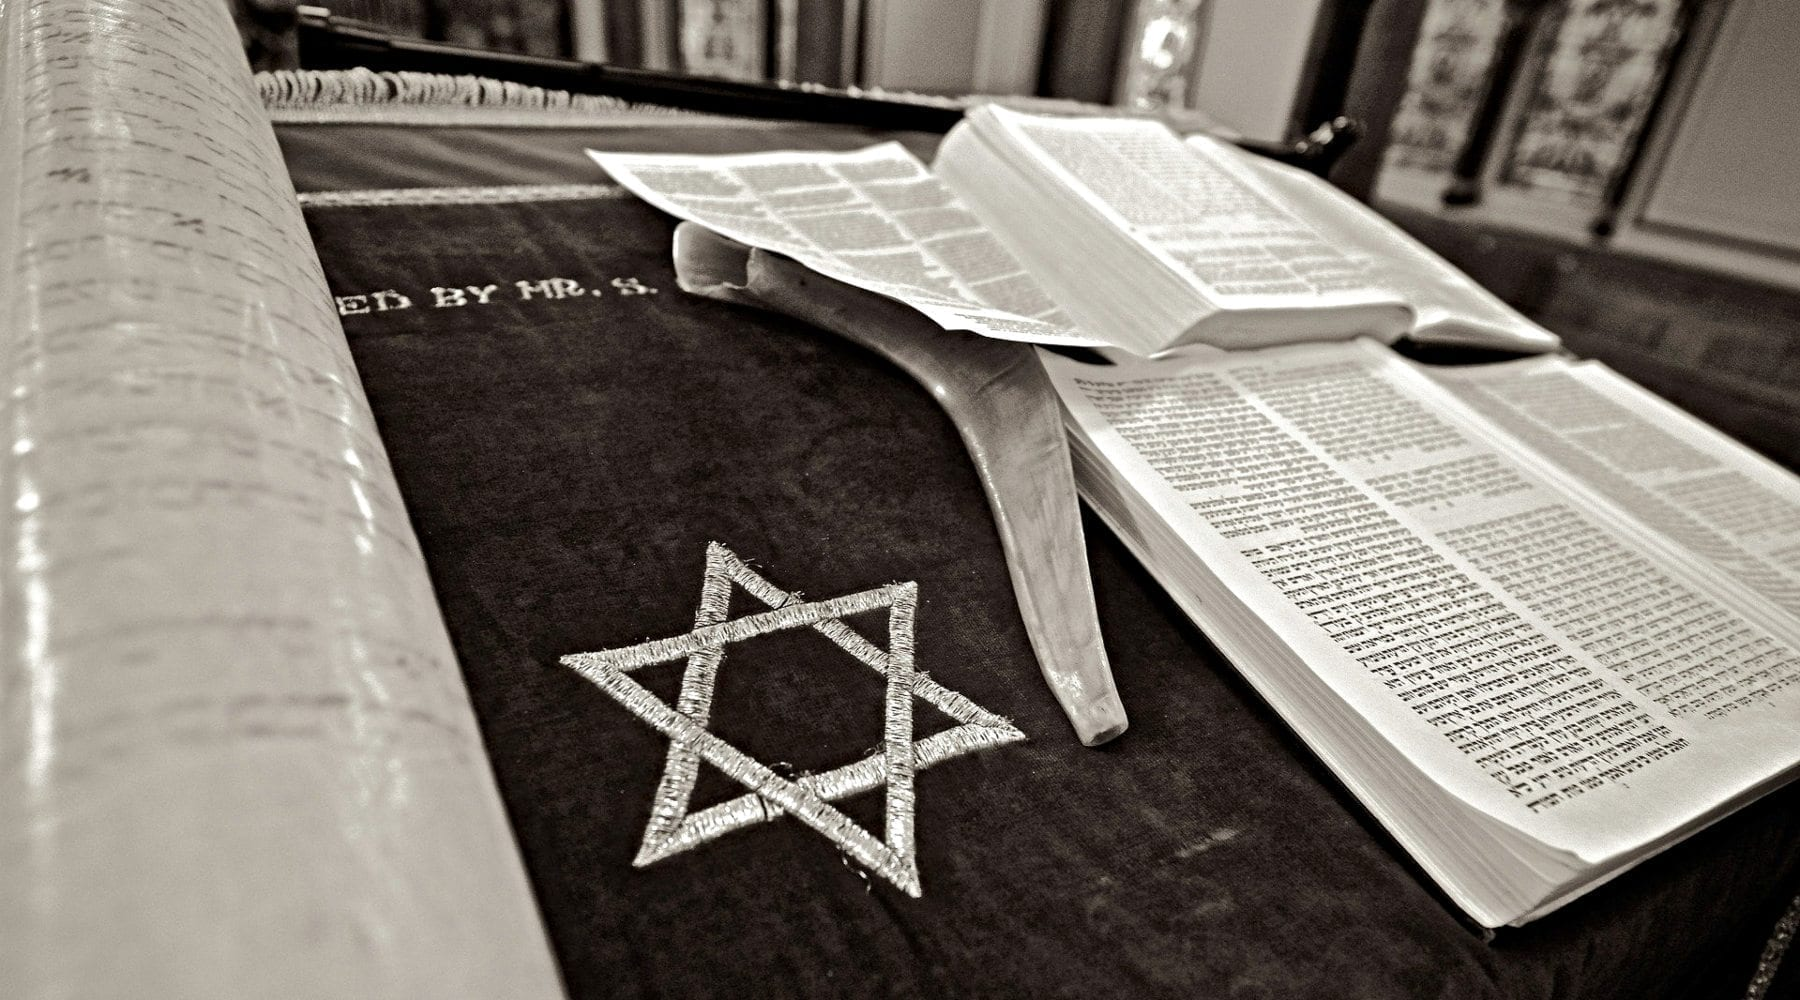 Anti-Jewish Bias Majority of Religious-Bias Hate Crimes